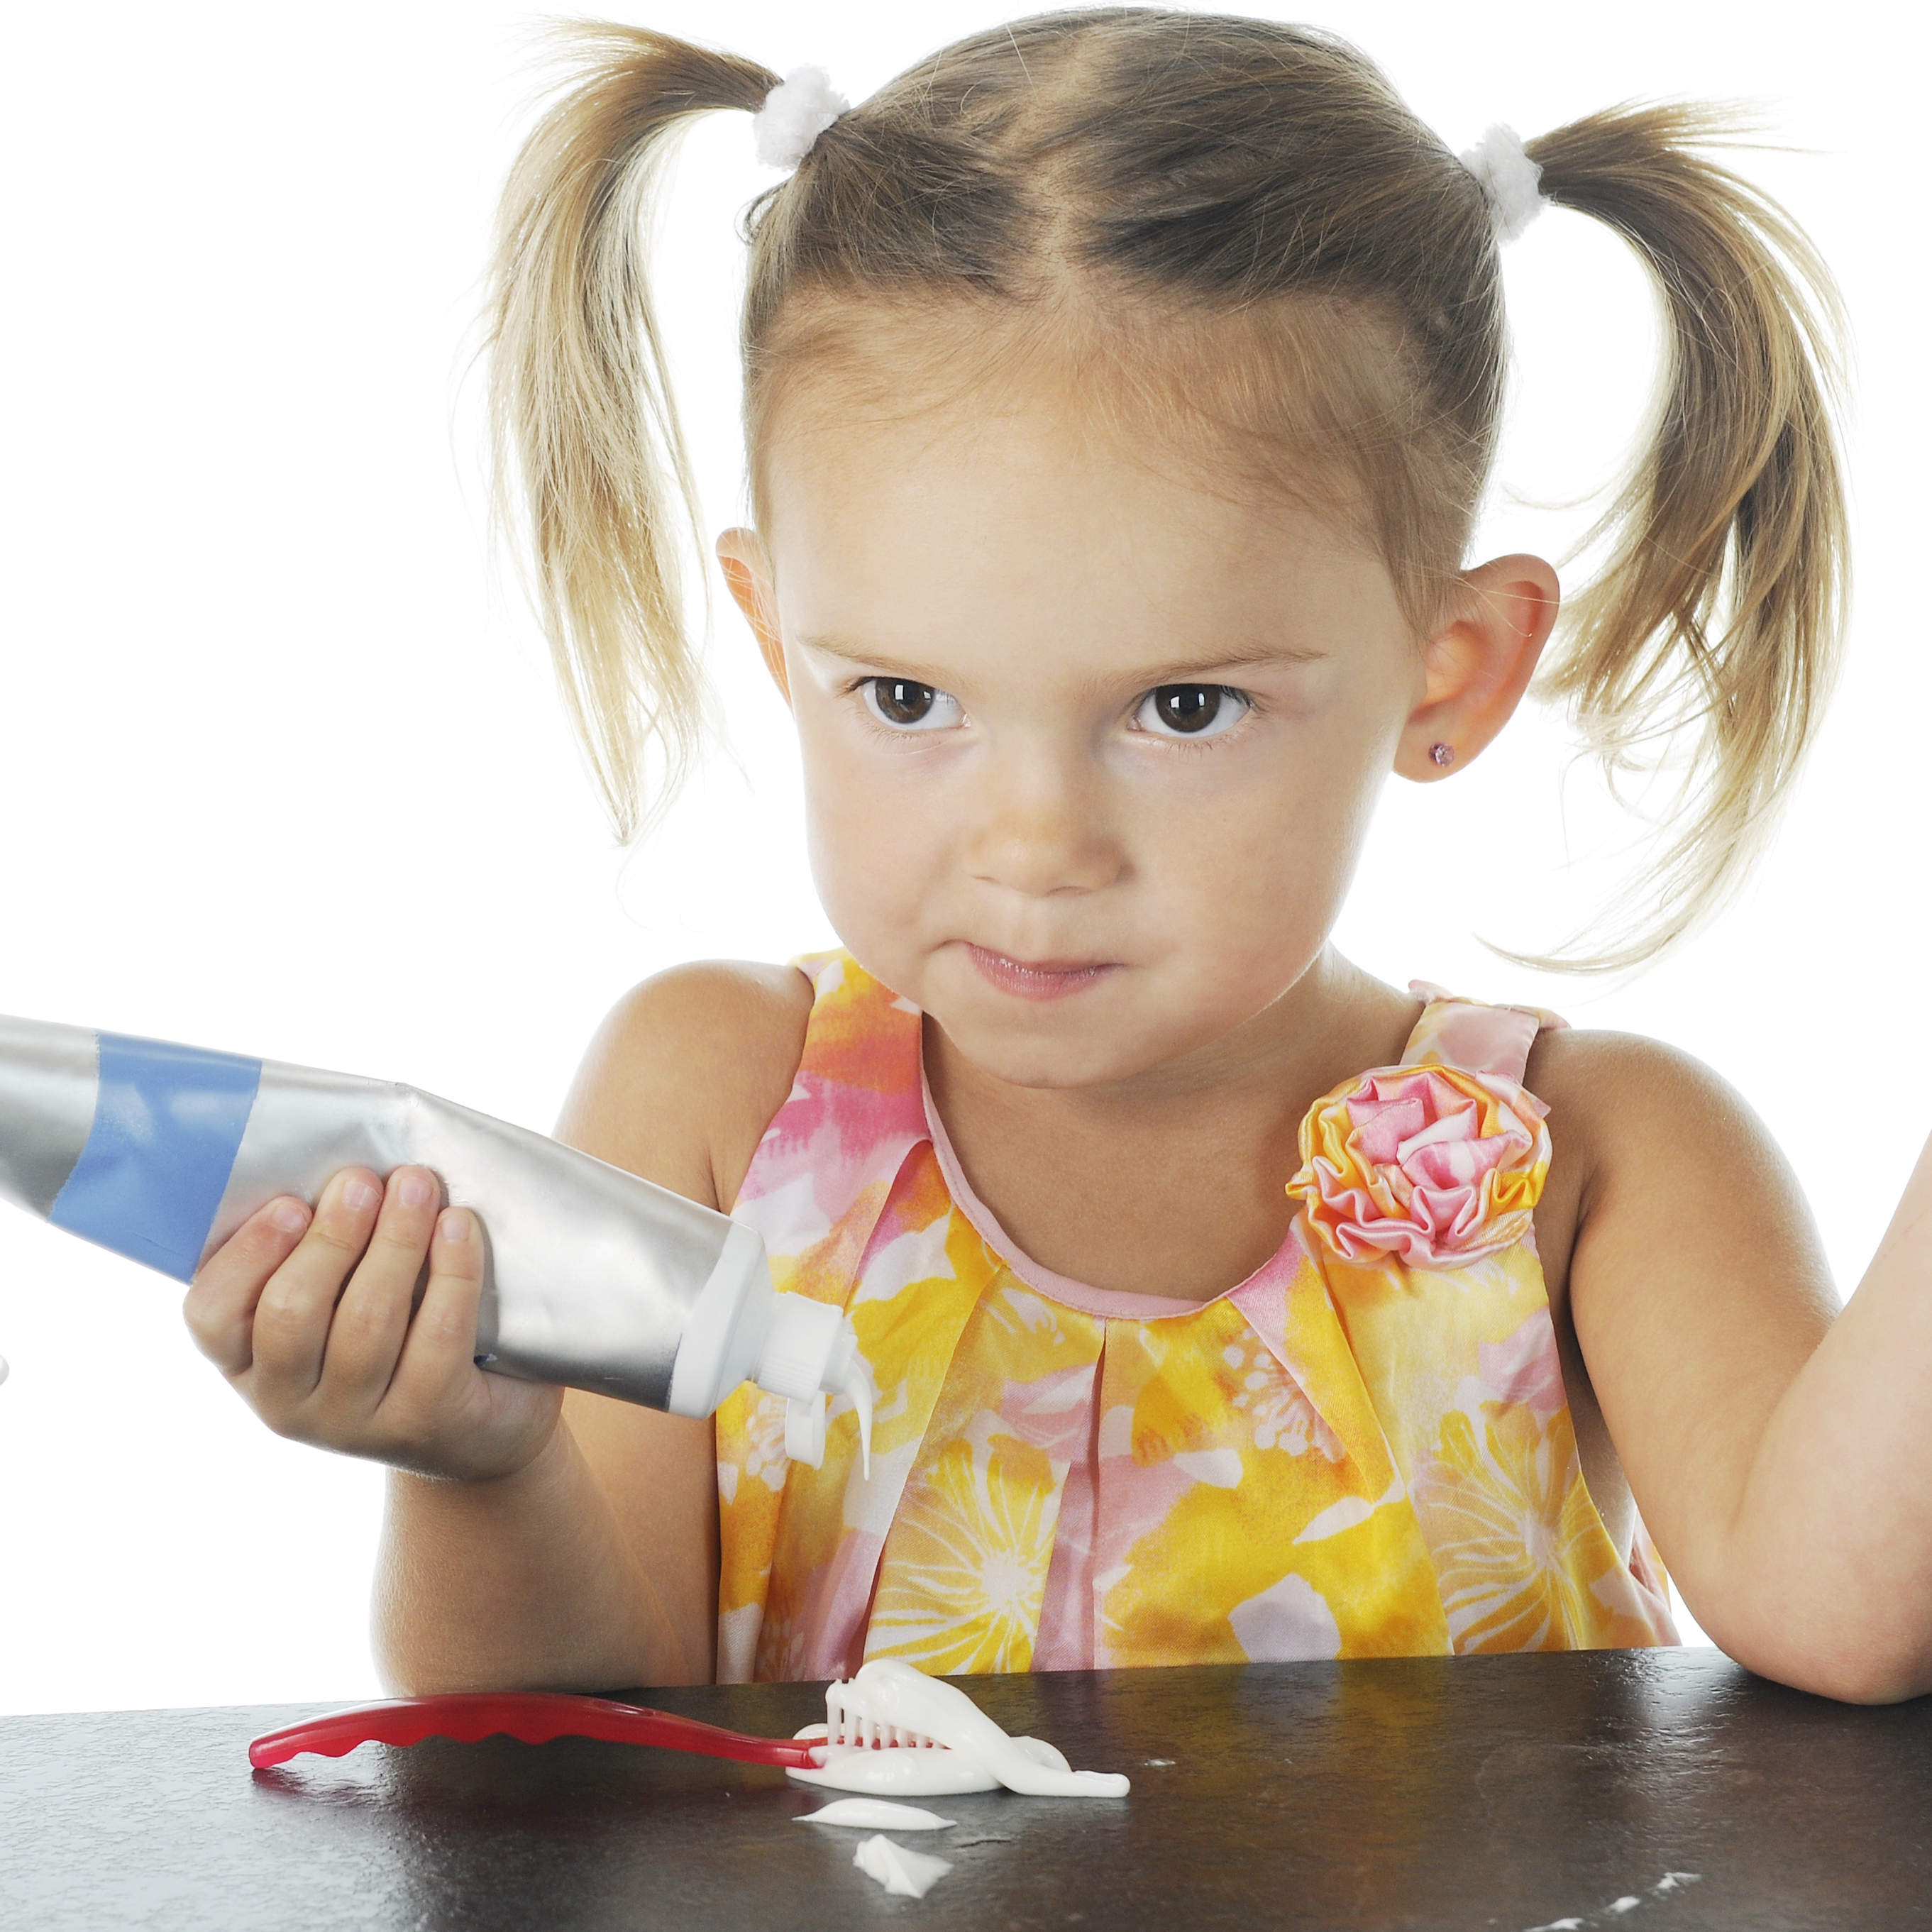 a little girl with a determined look on her face while squeezing a lot of toothpaste on a toothbrush